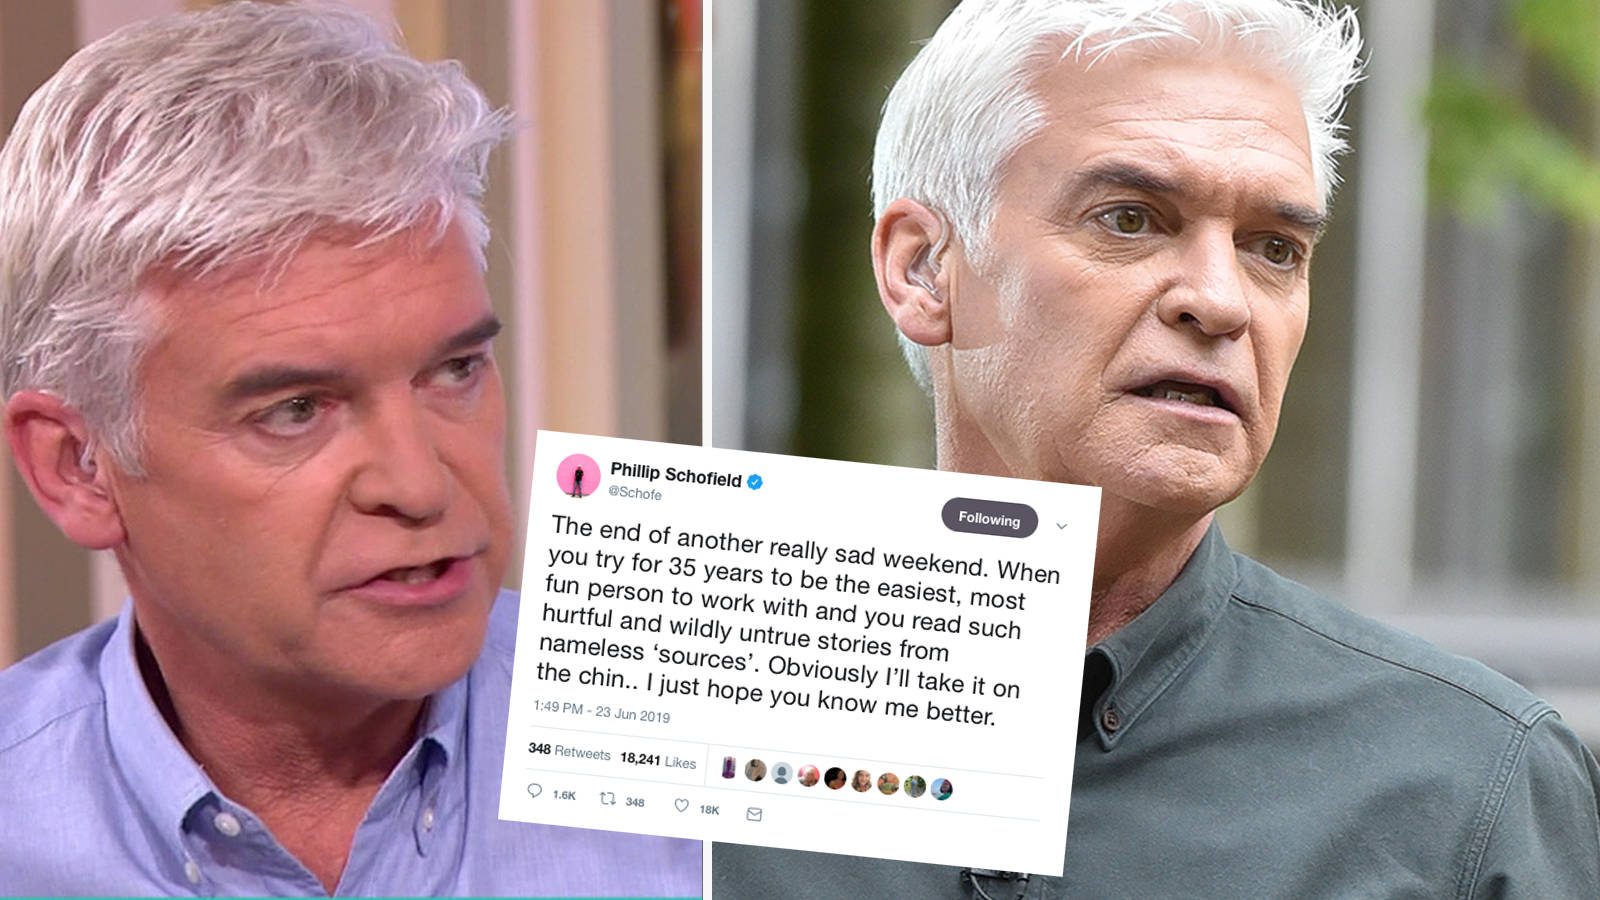 Philip Schofield hits back at 'hurtful' claims he's